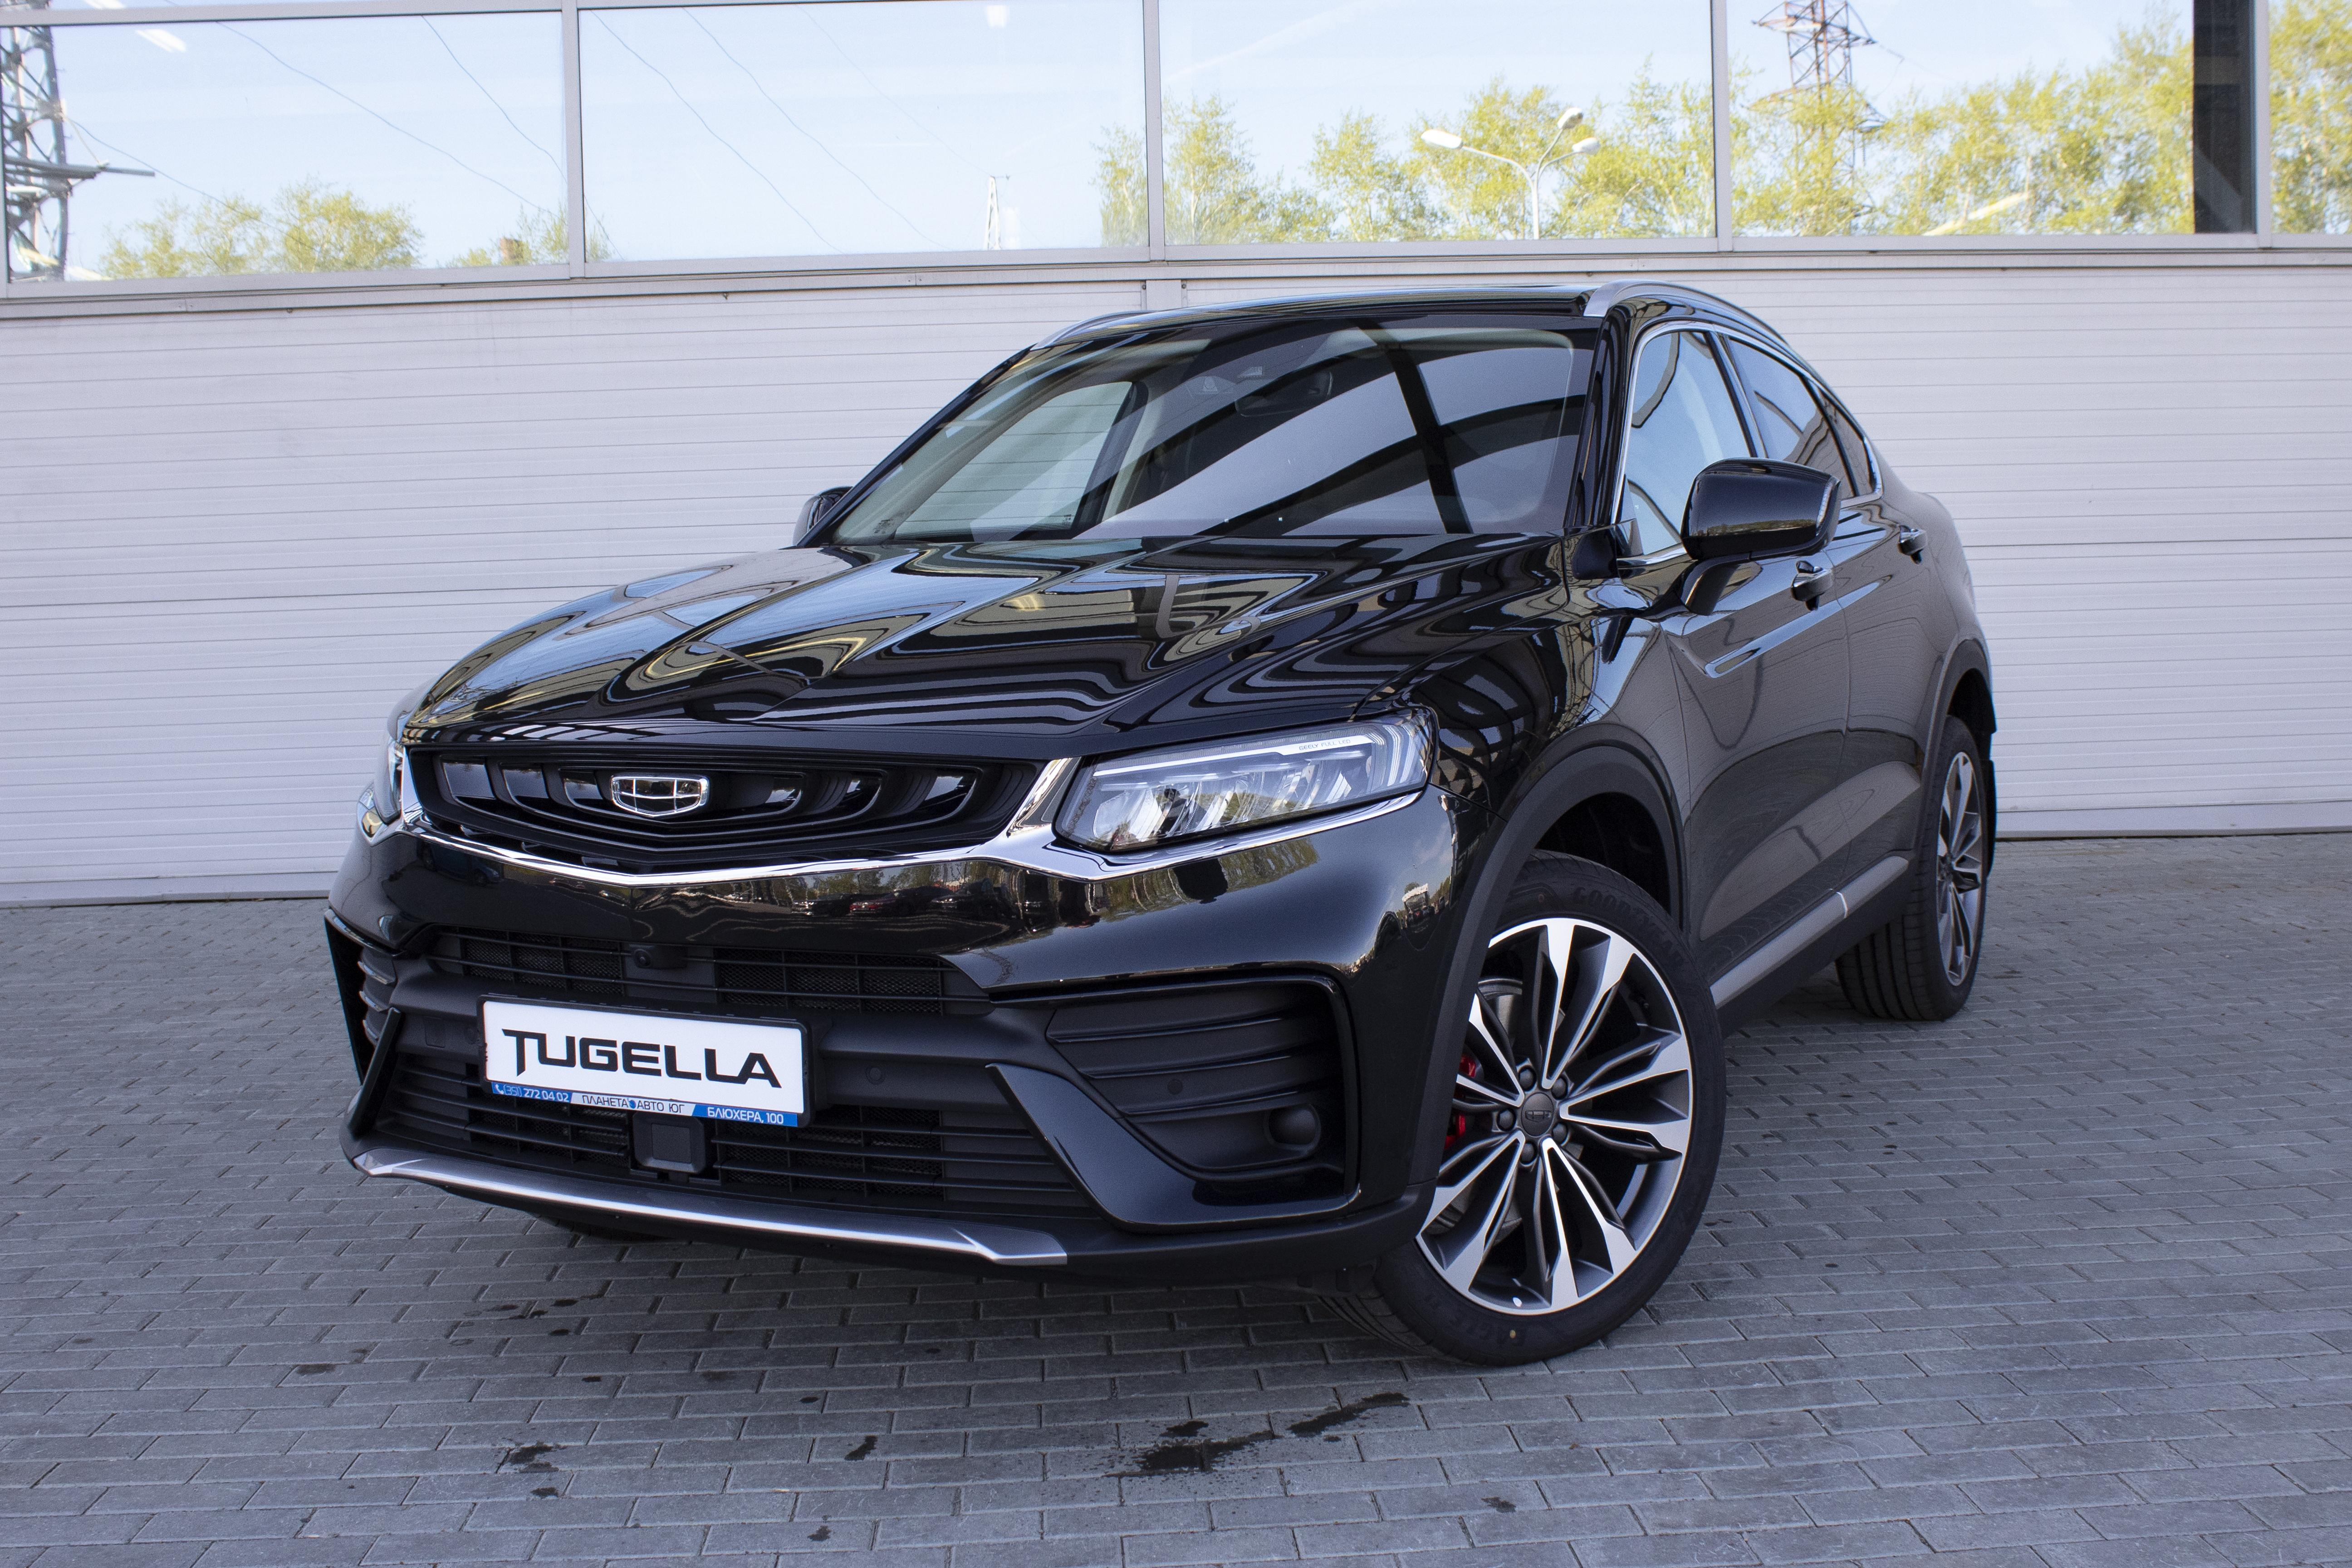 Geely Tugella 2.0T 4WD 8AT (238 л.с.) Flagship